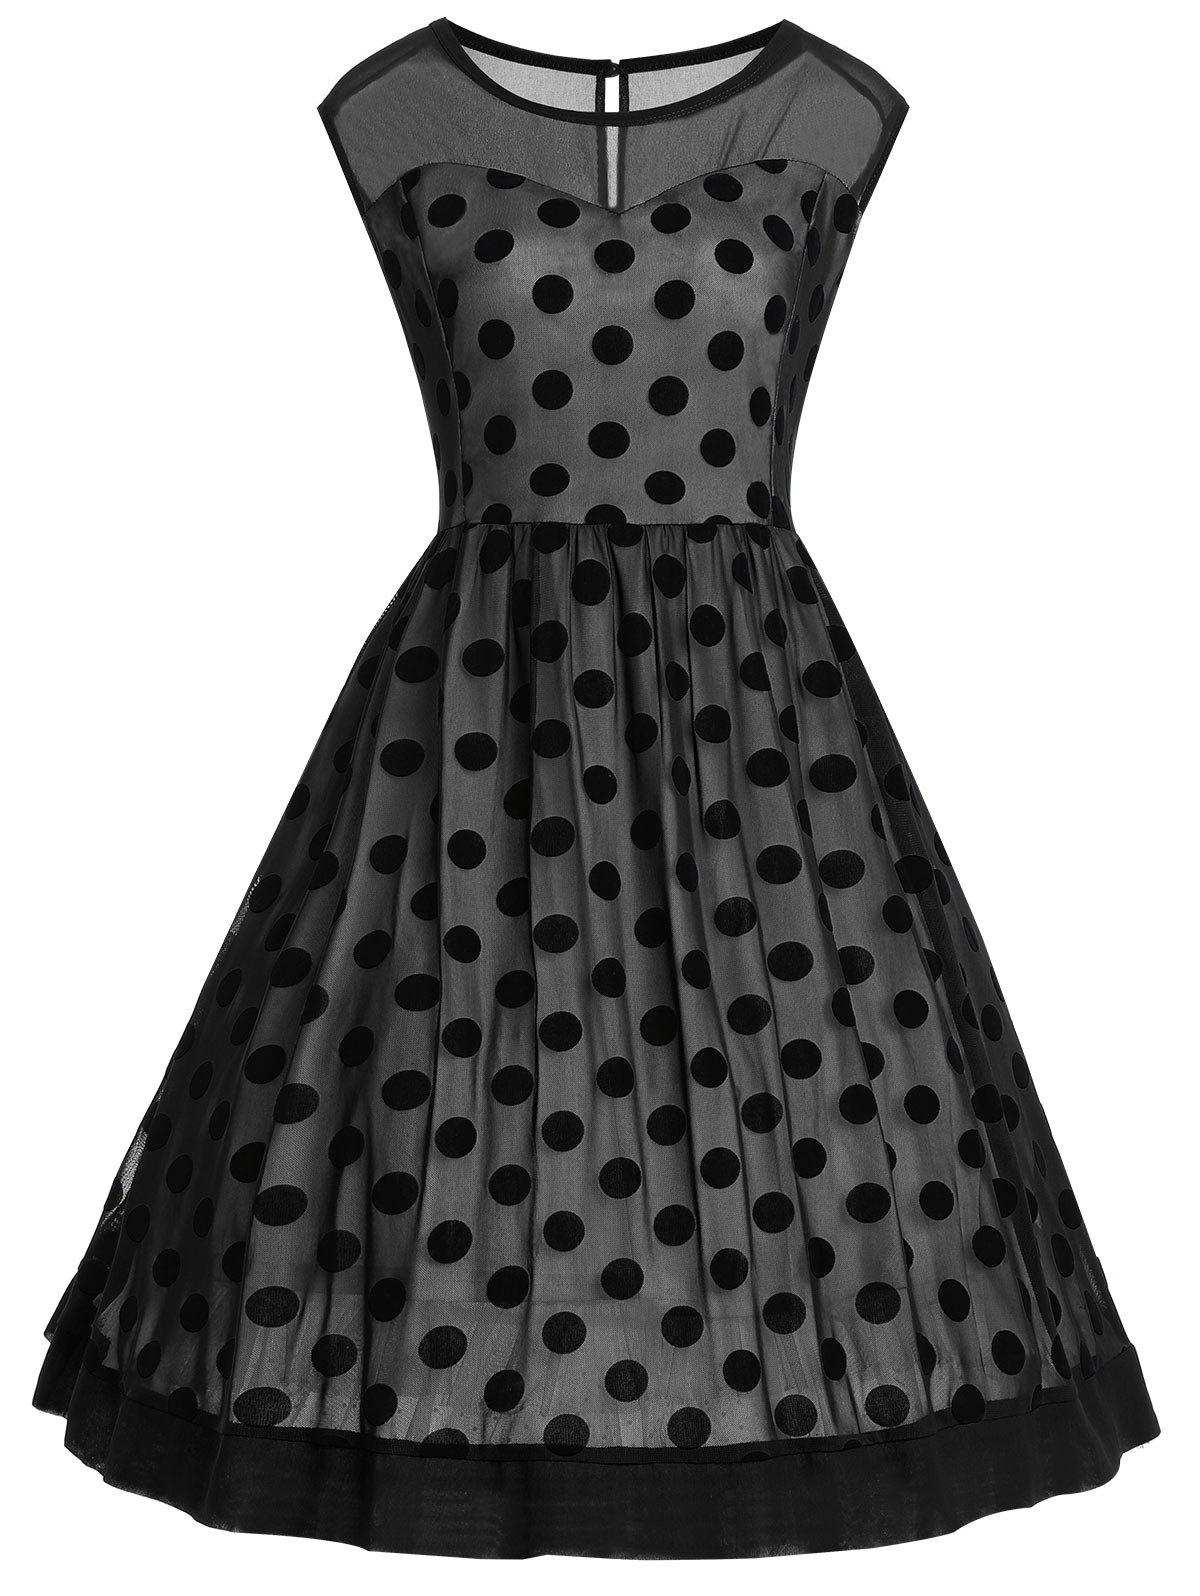 Polka Dot Sleeveless Vintage Plus Size DressWOMEN<br><br>Size: 3XL; Color: BLACK; Style: Vintage; Material: Polyester; Silhouette: A-Line; Dresses Length: Knee-Length; Neckline: Round Collar; Sleeve Length: Sleeveless; Pattern Type: Polka Dot; With Belt: No; Season: Fall,Spring,Summer,Winter; Weight: 0.3900kg; Package Contents: 1 x Dress;